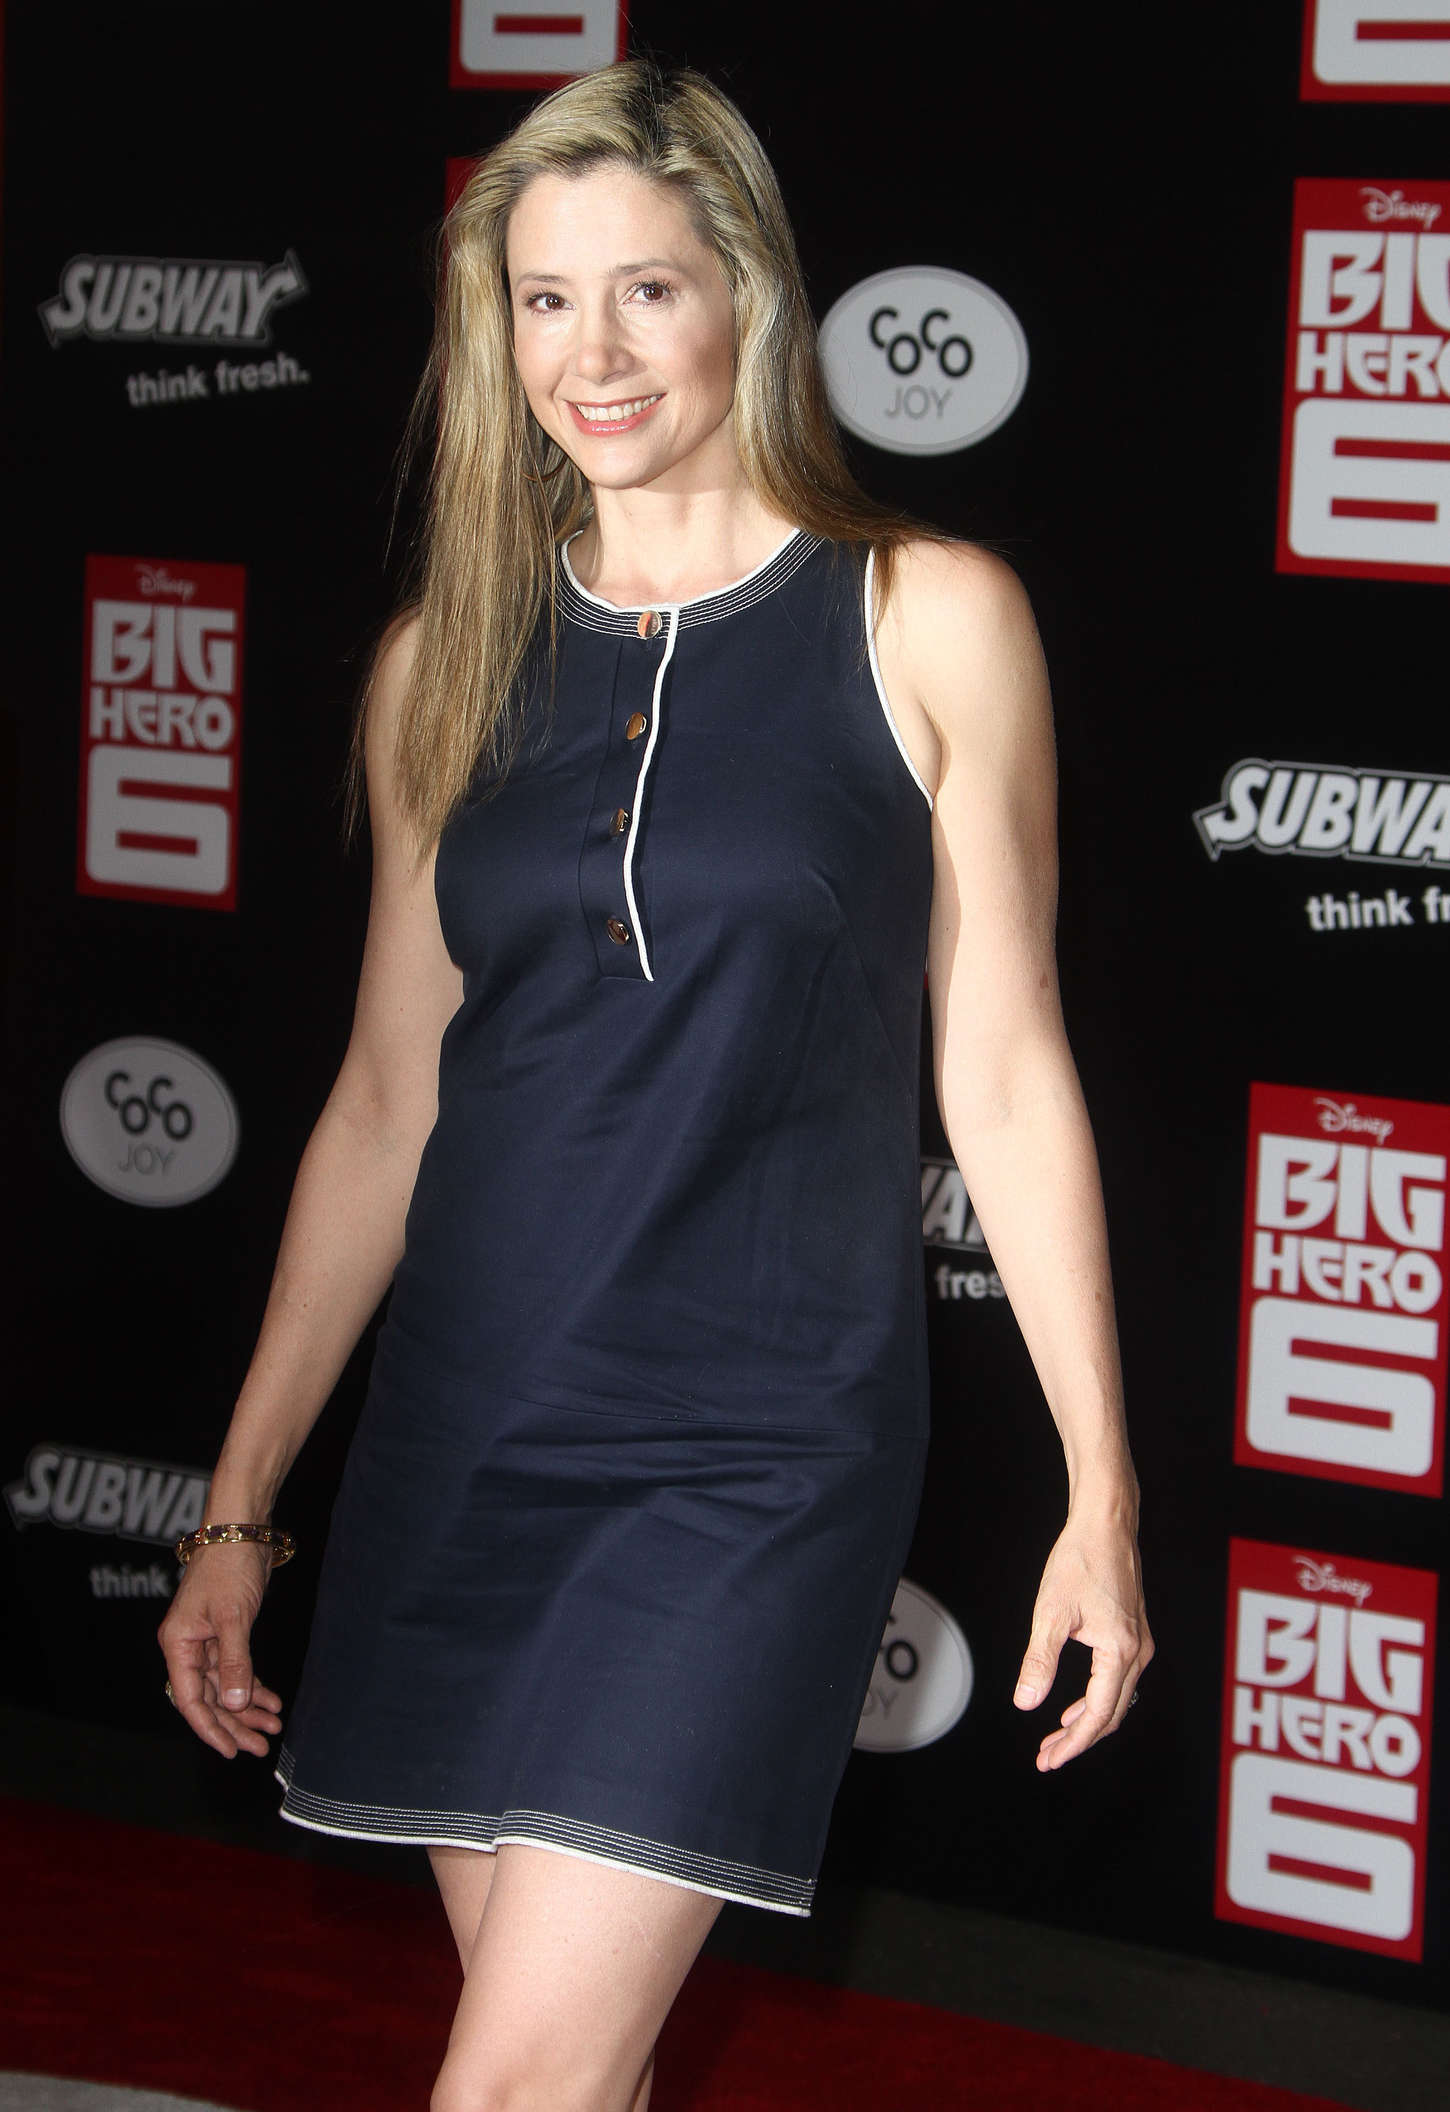 Mira Sorvino at Premiere of Big Hero in Hollywood